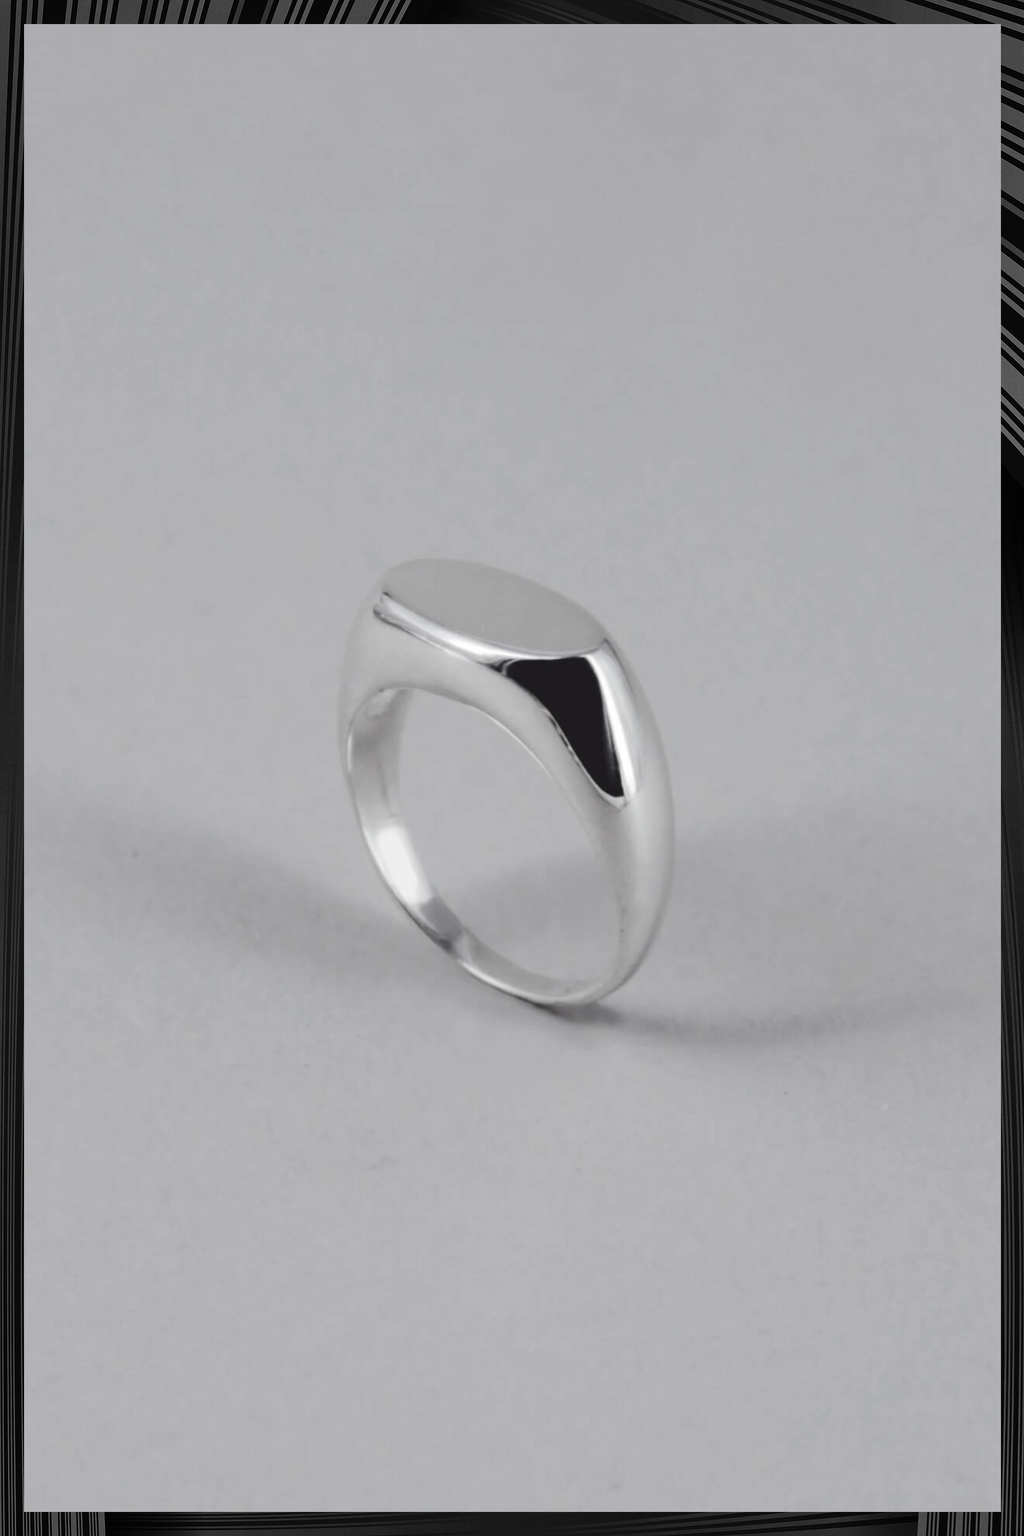 Silver Oval Signet Ring | Free Delivery - 4-5 Week Shipping